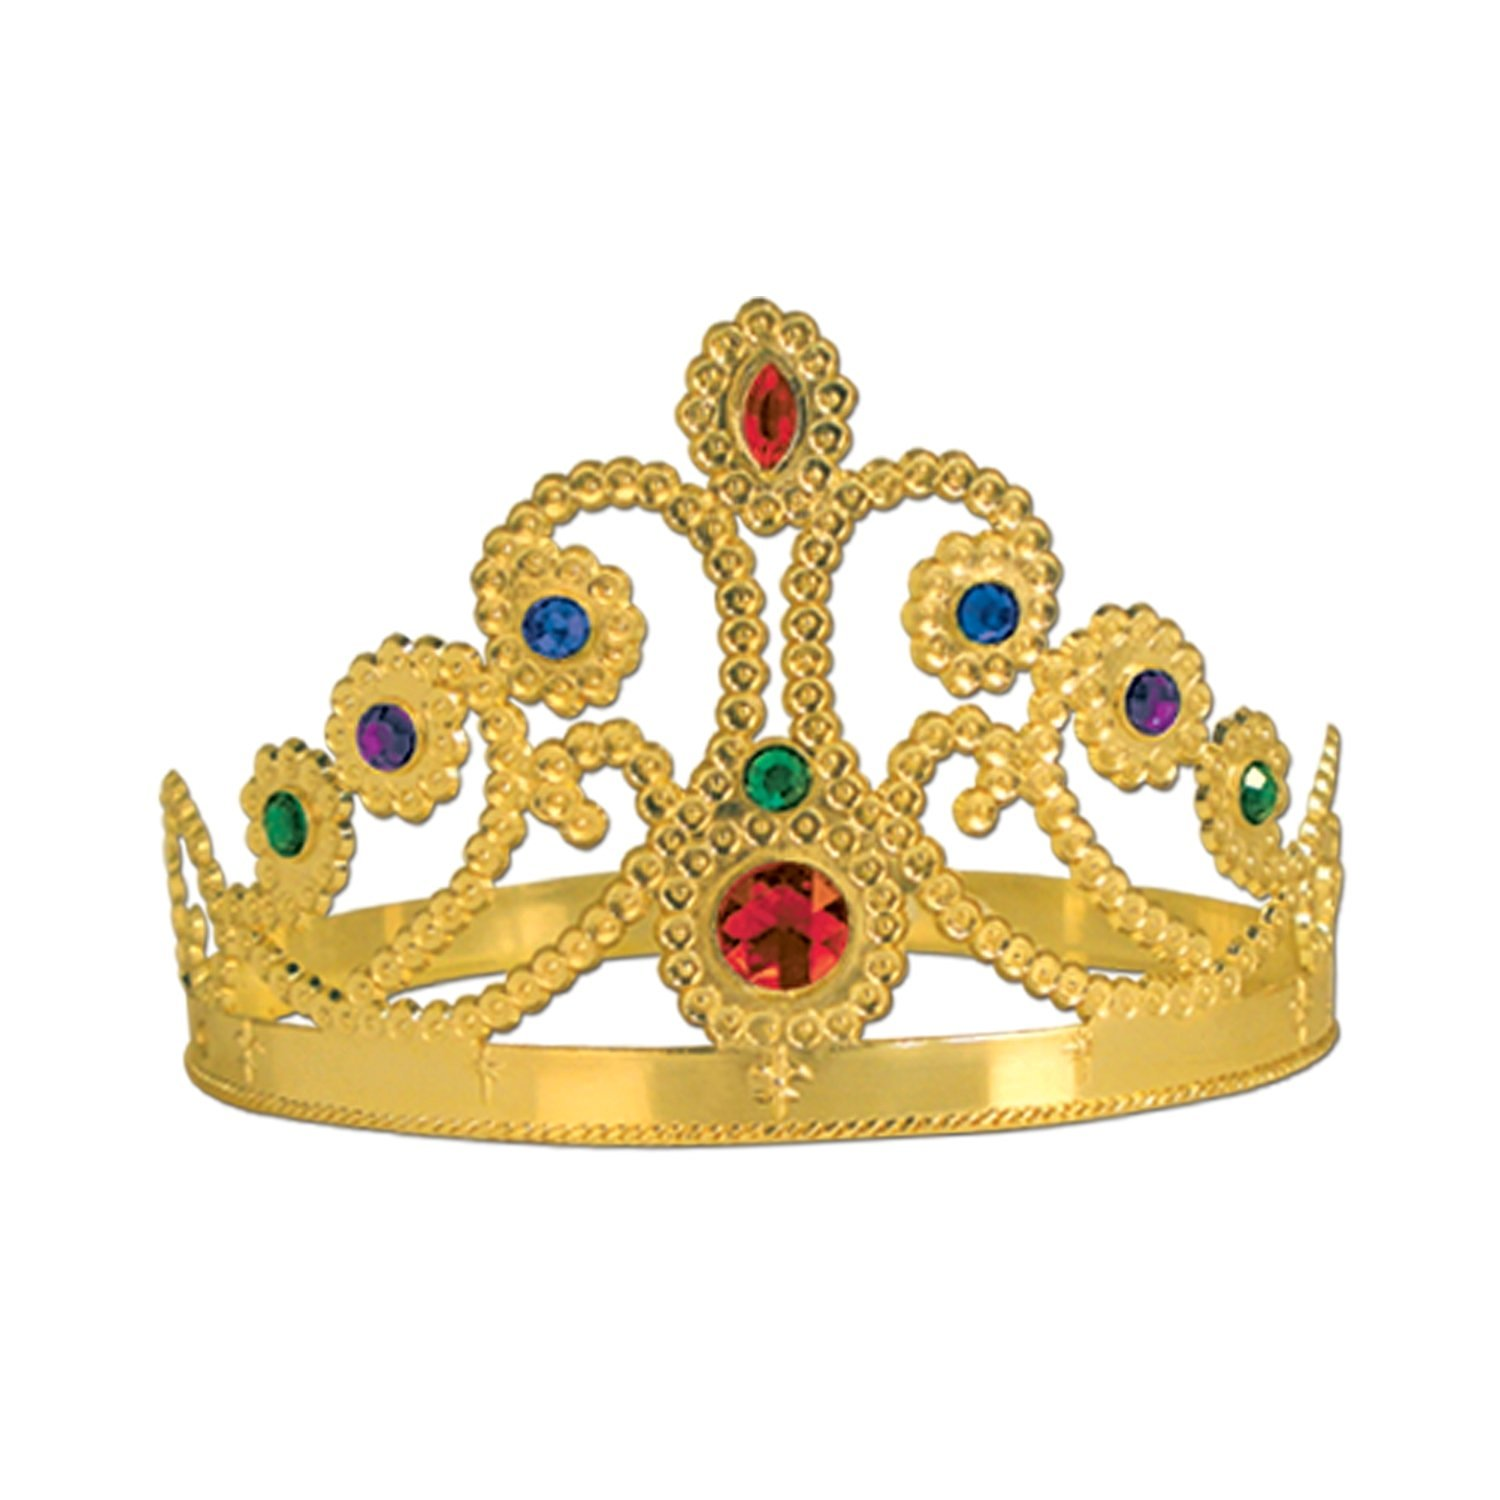 Beistle 60251-GD 12-Pack Plastic Jeweled Queen-Feets Tiara, Gold